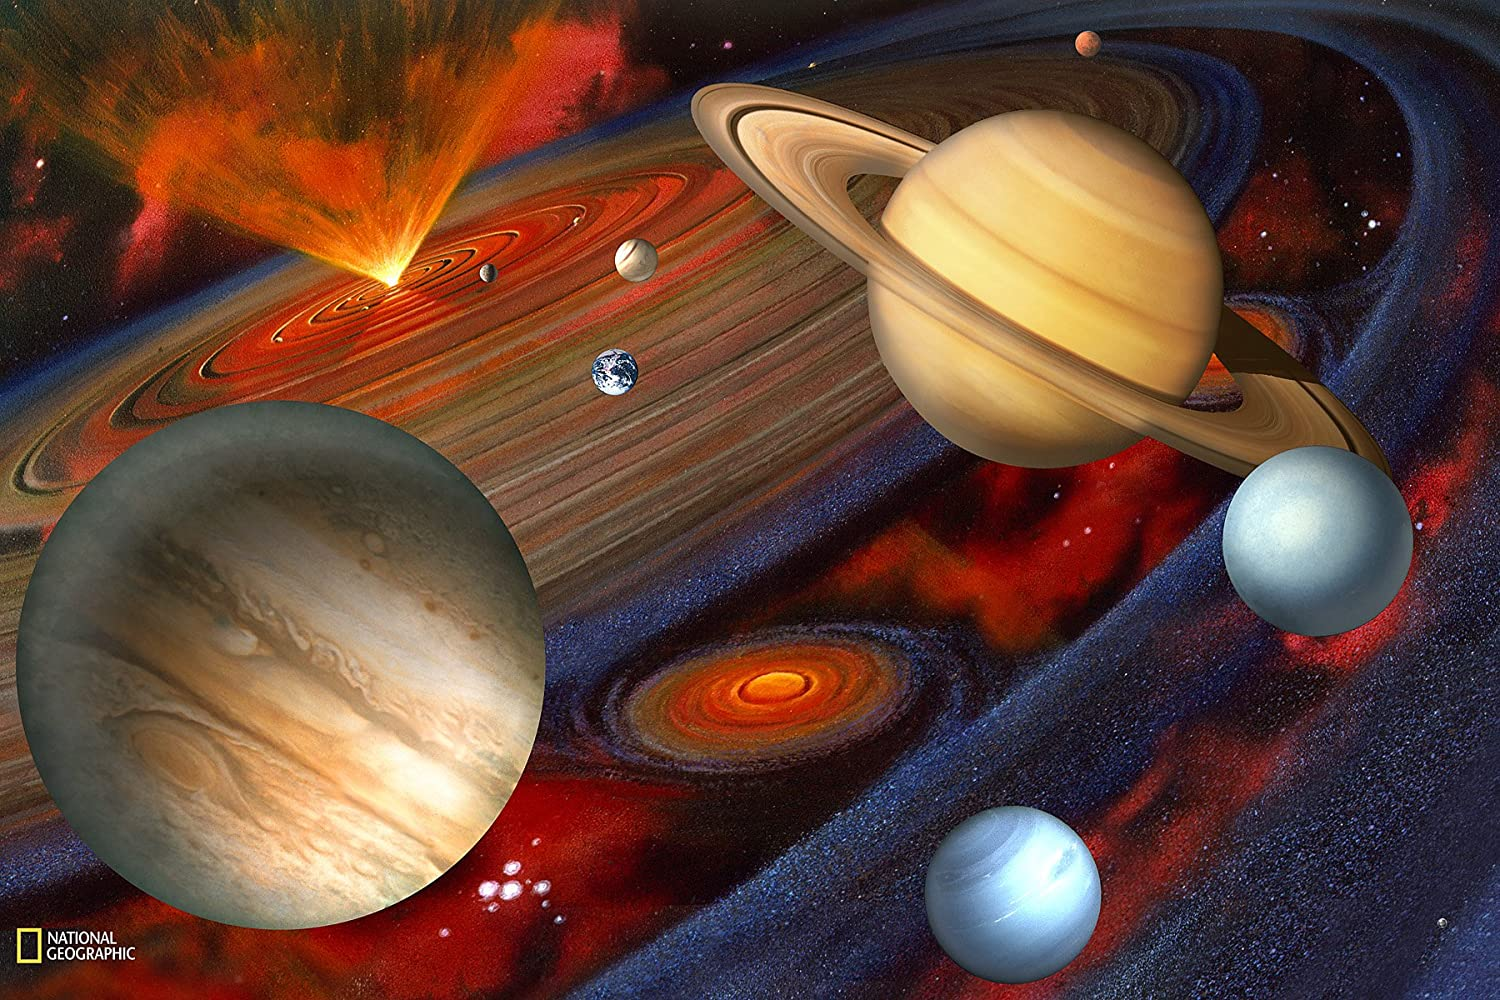 Brewster National Geographic Kids NG94613 Planets Wall Mural, 72 Inch X  48 Inch: Amazon.co.uk: DIY U0026 Tools Part 83